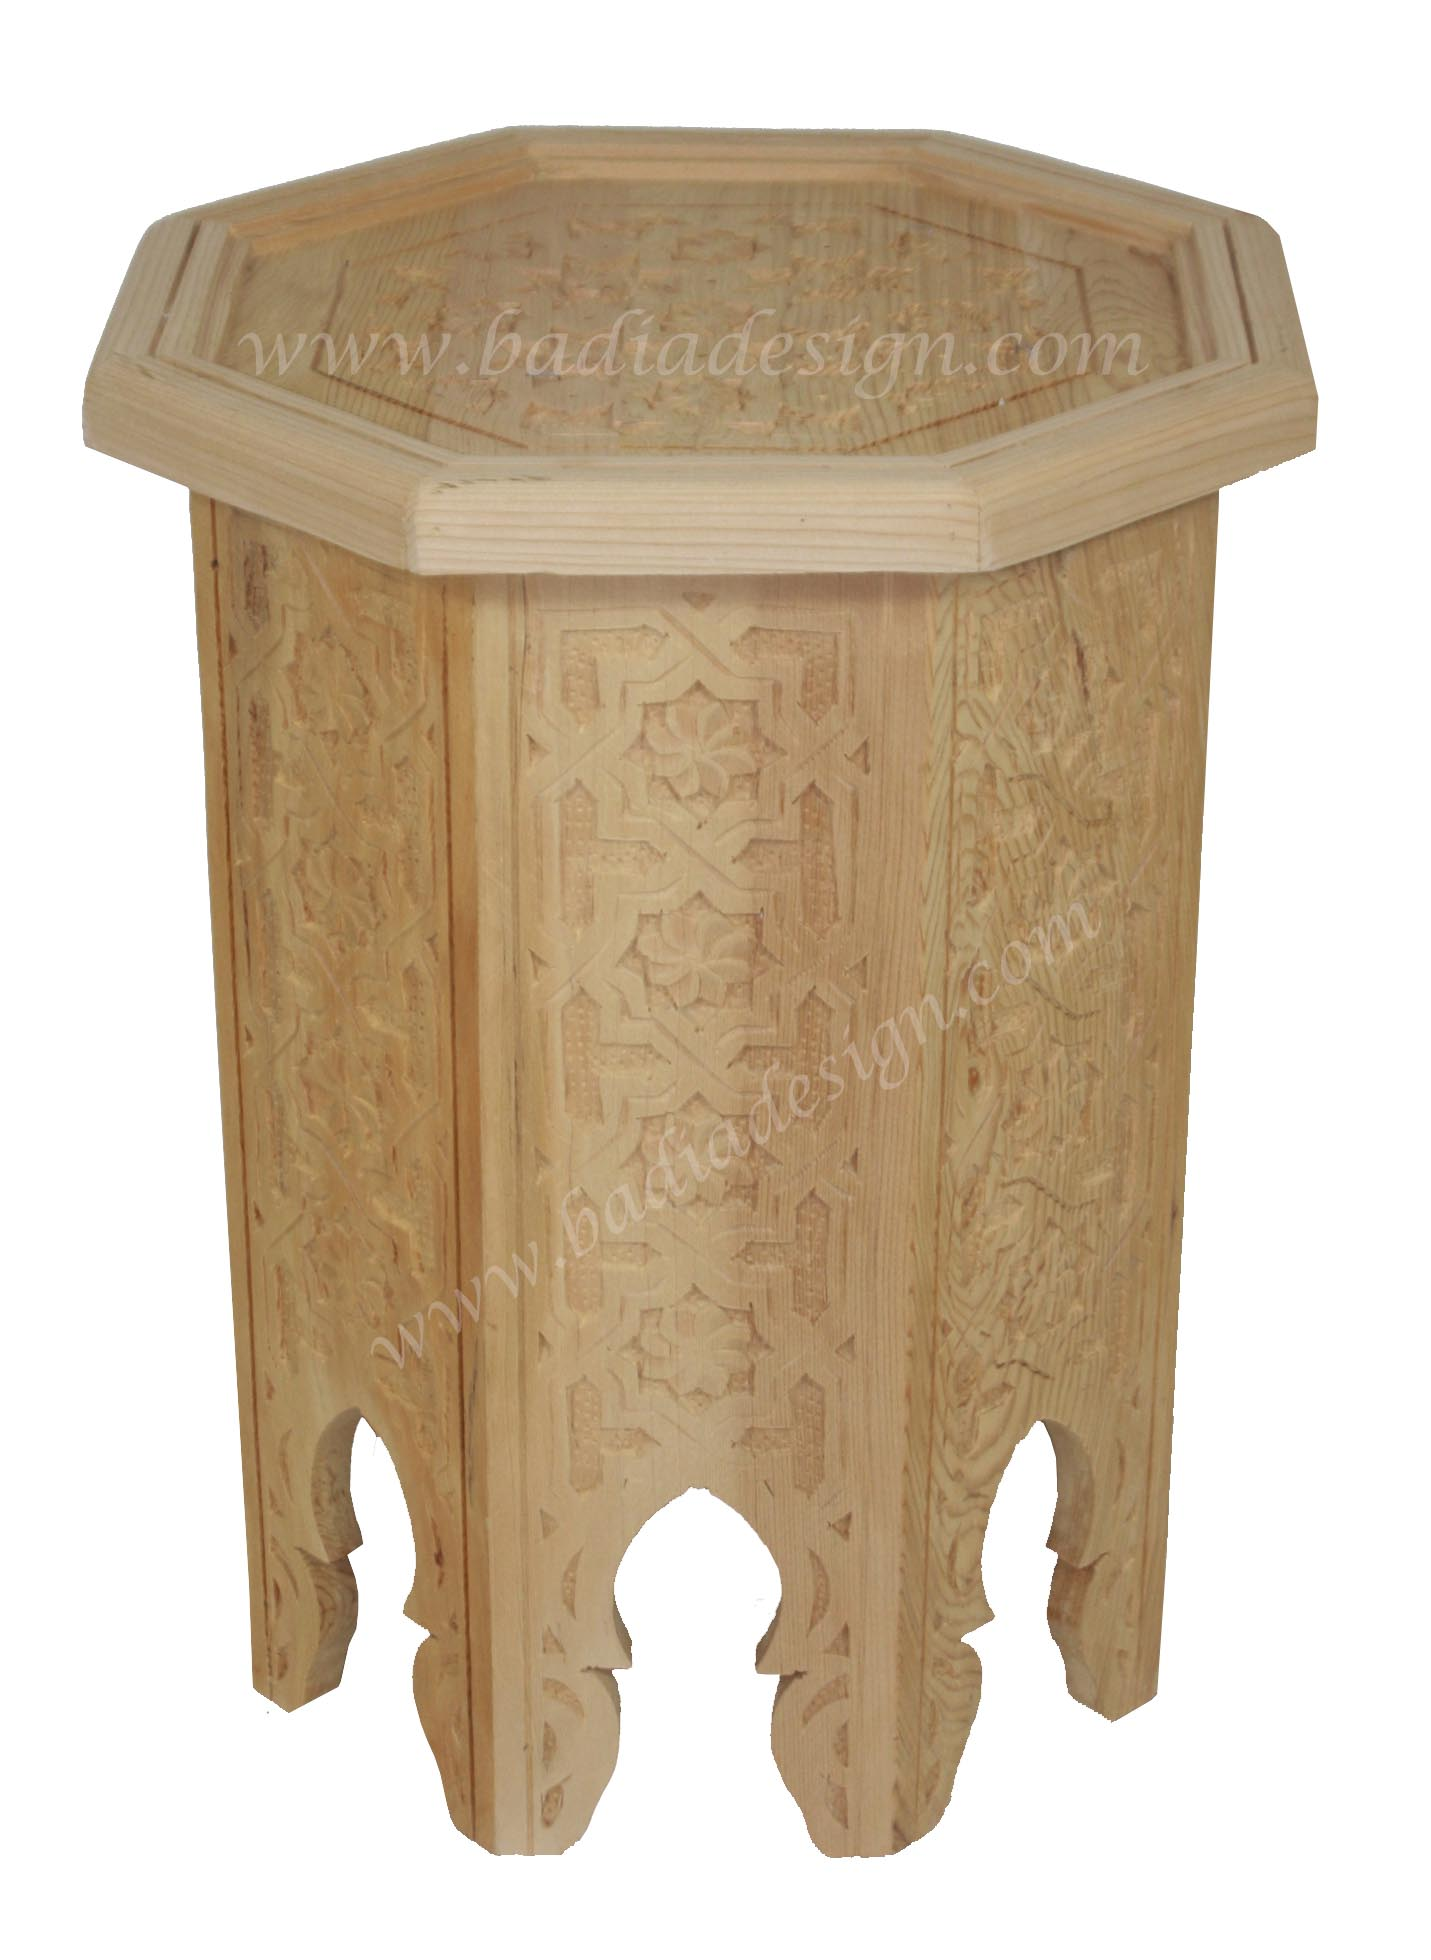 moroccan-unstained-side-table-cw-st044-1.jpg